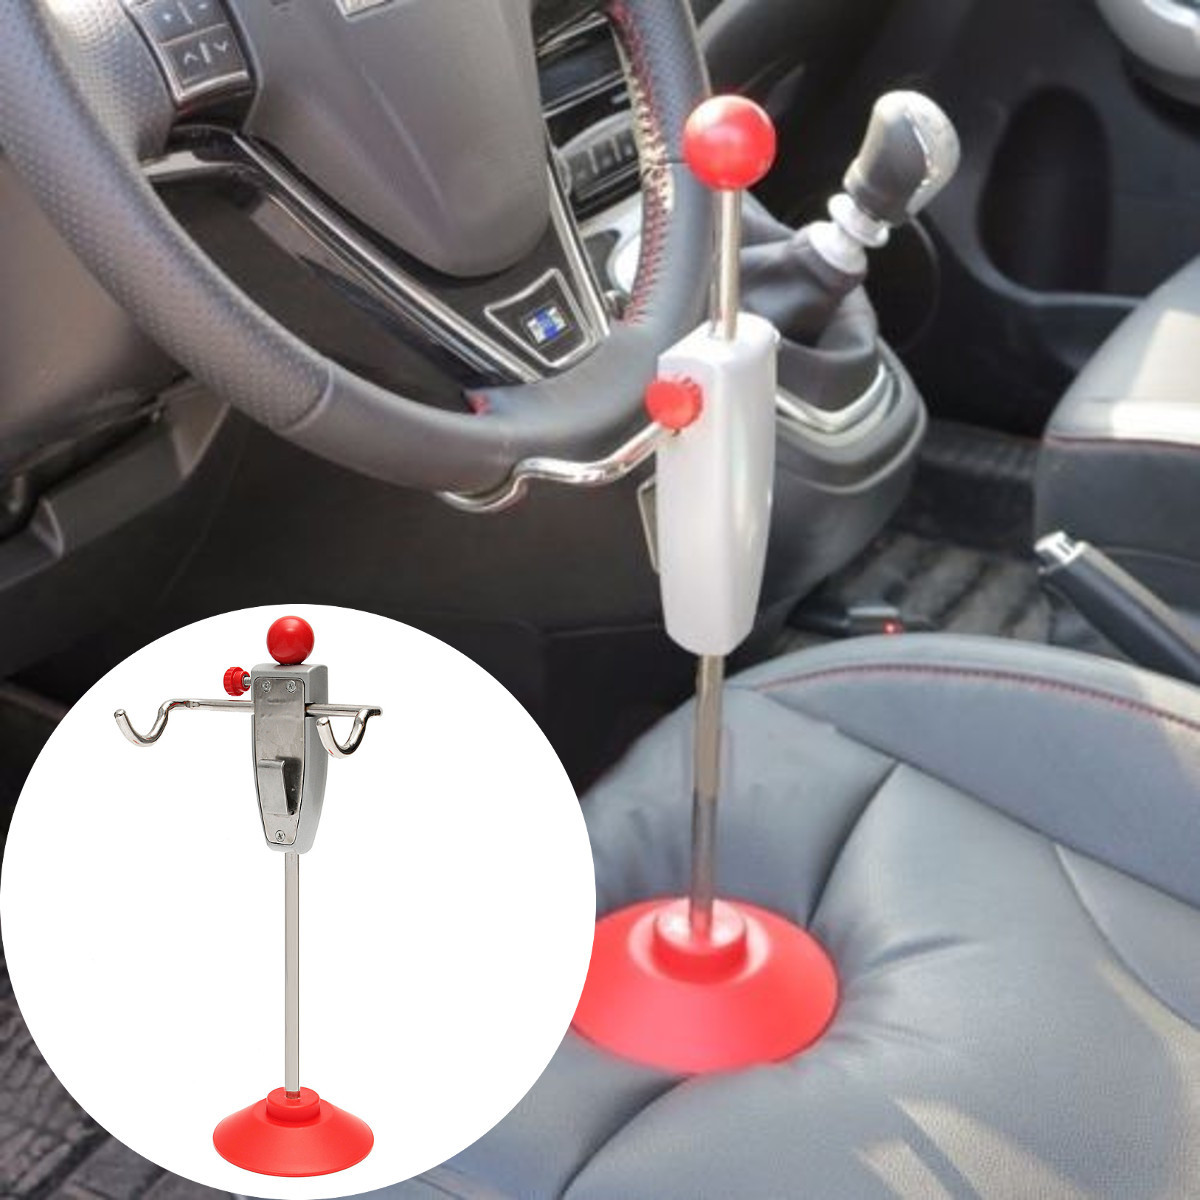 14.5 Inch Car Alignment Rack Truck Van Steering Wheel Leveling Holder Stand Tool System Red Silver